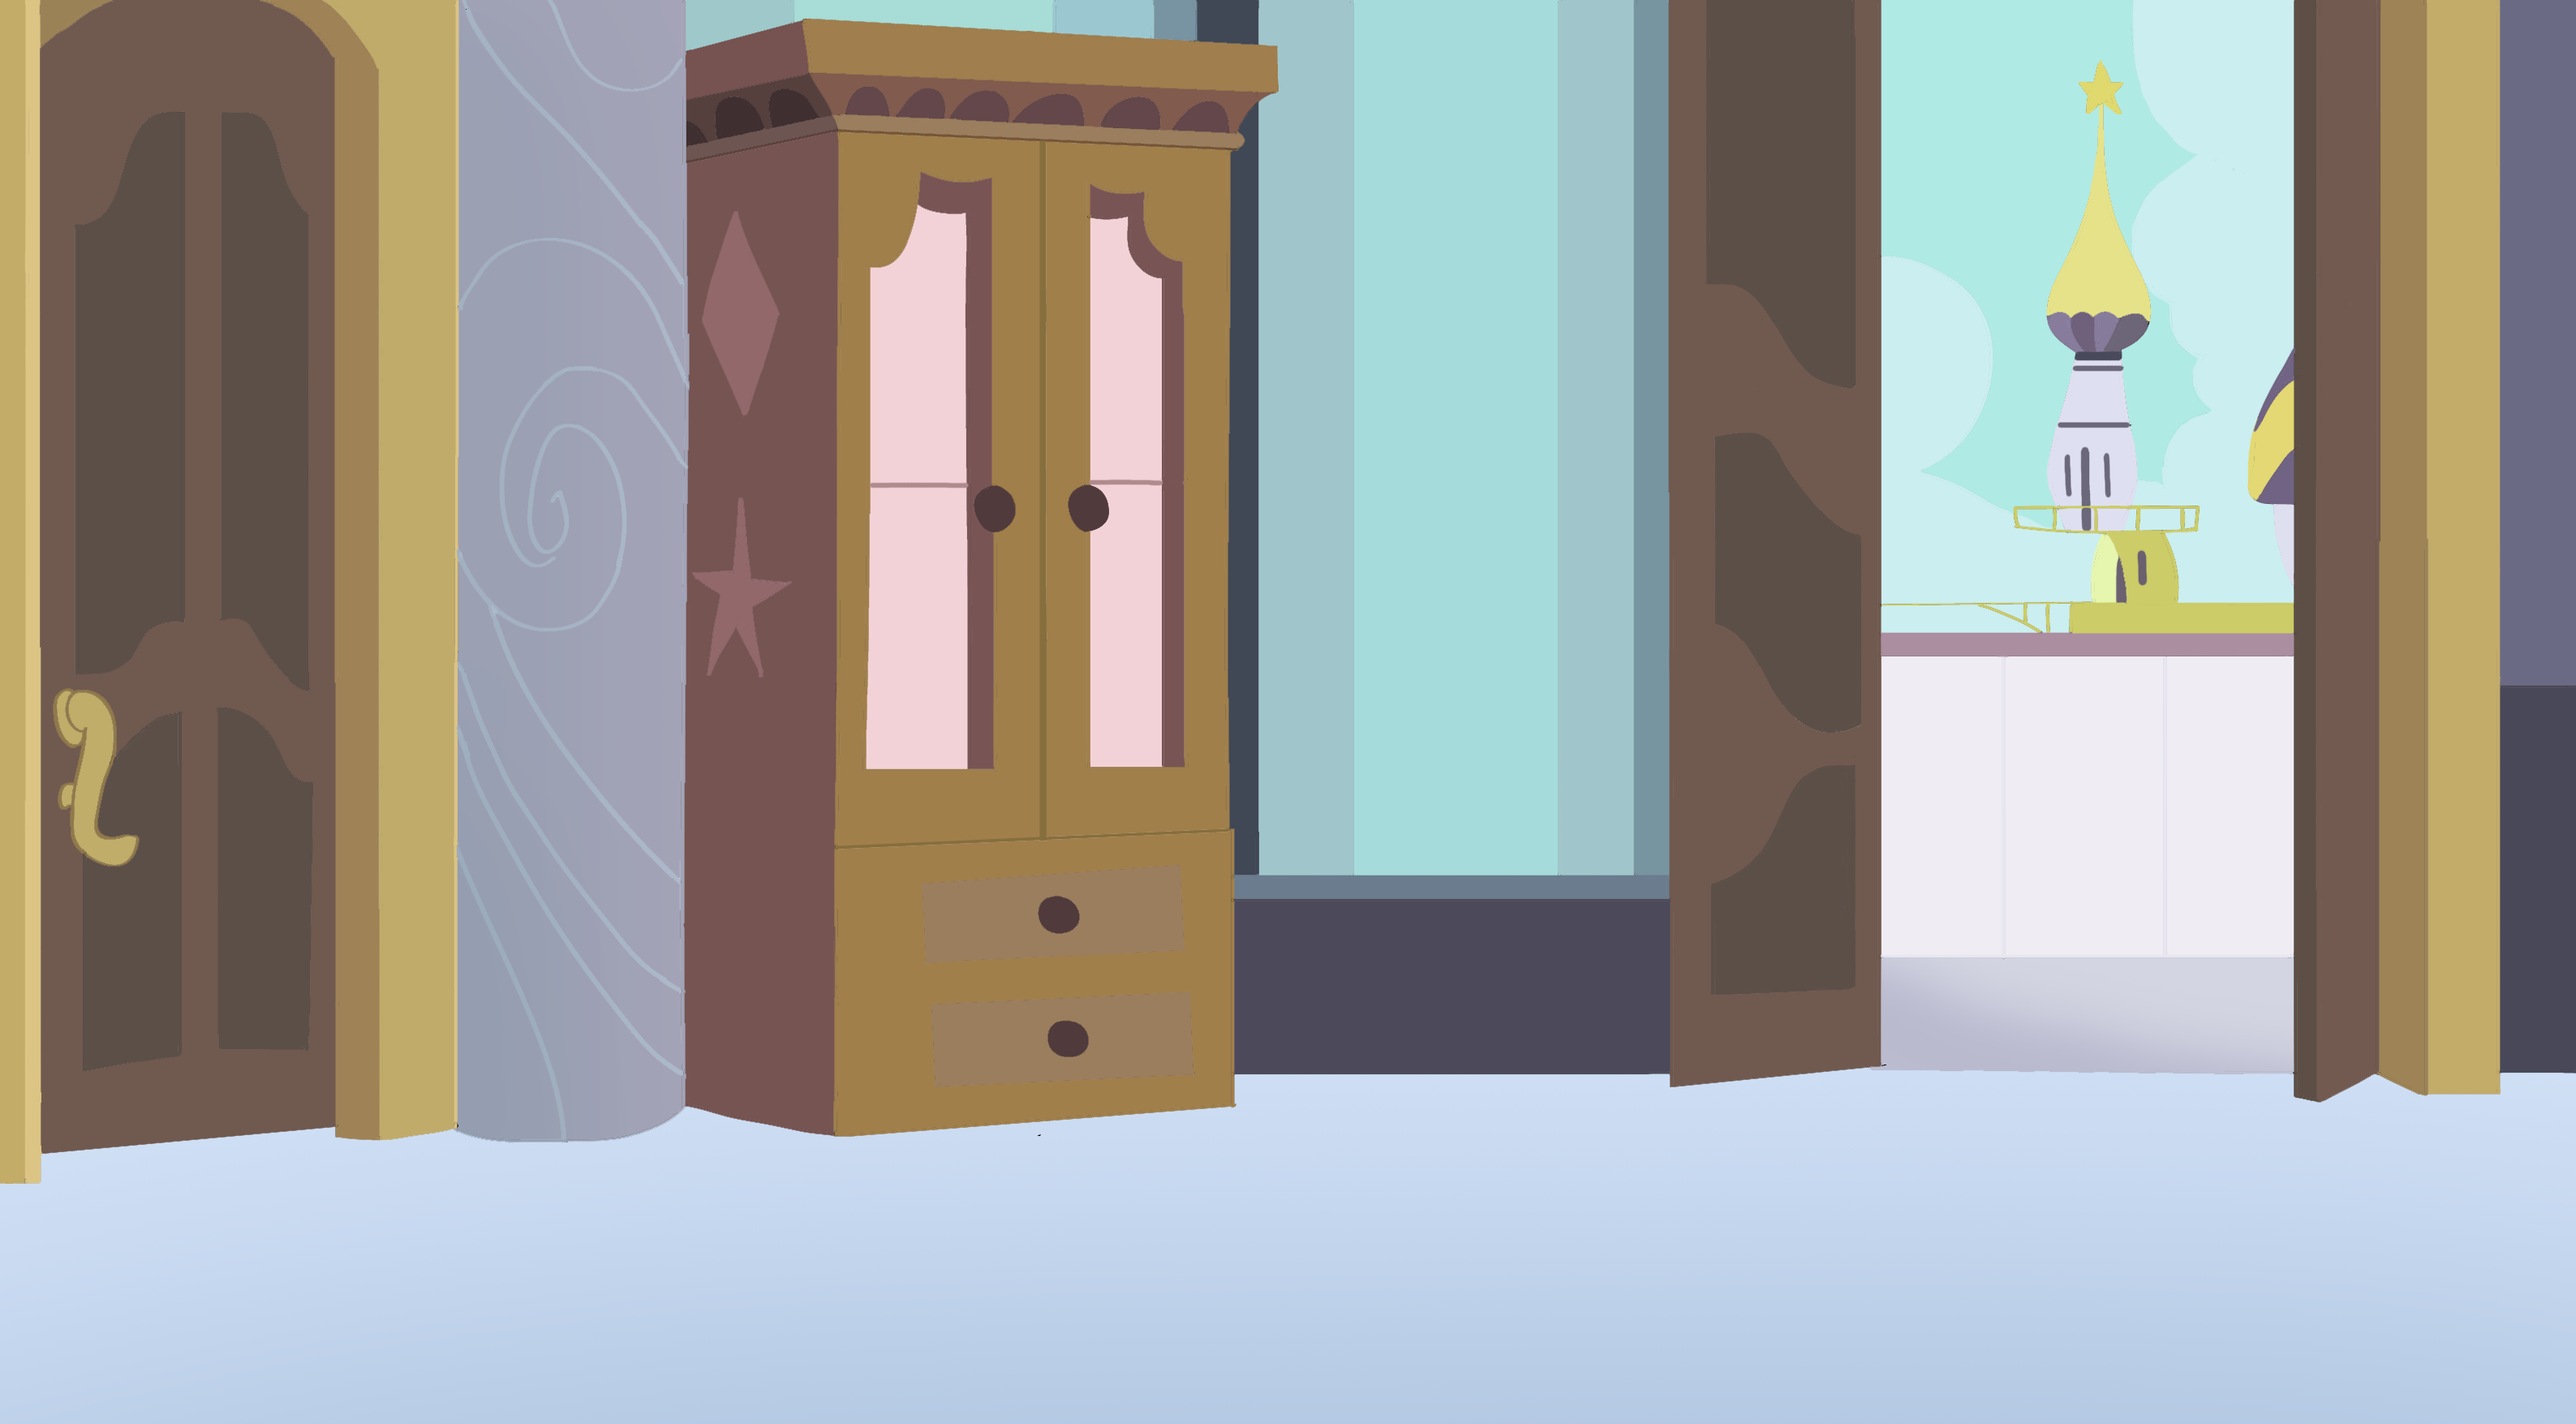 Castle room background -  Canterlot Castle Room Background By Stelar Eclipse